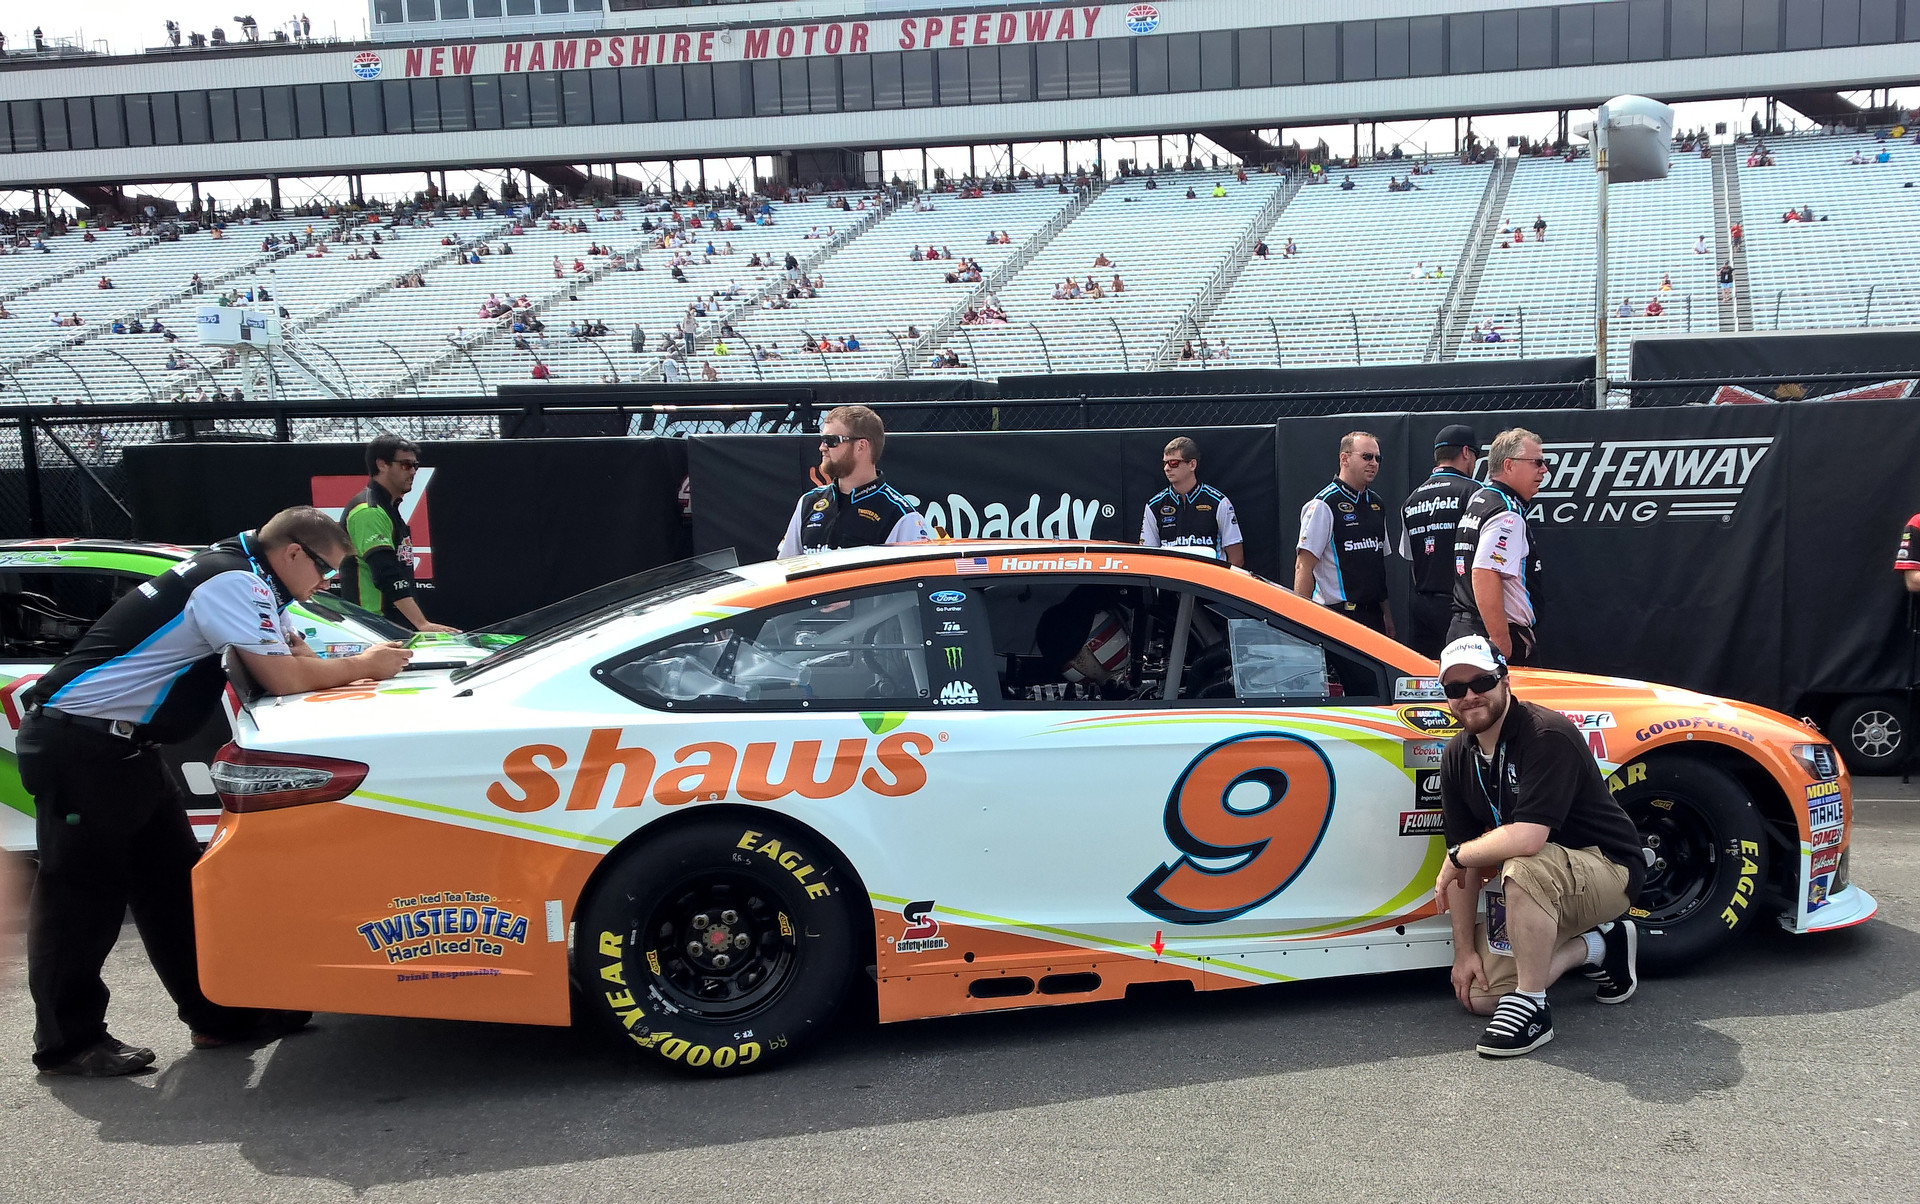 Posing with the #9 Shaw's Supermarkets Ford Fusion in the garage at New Hampshire Motor Speedway on July 17th, 2015.